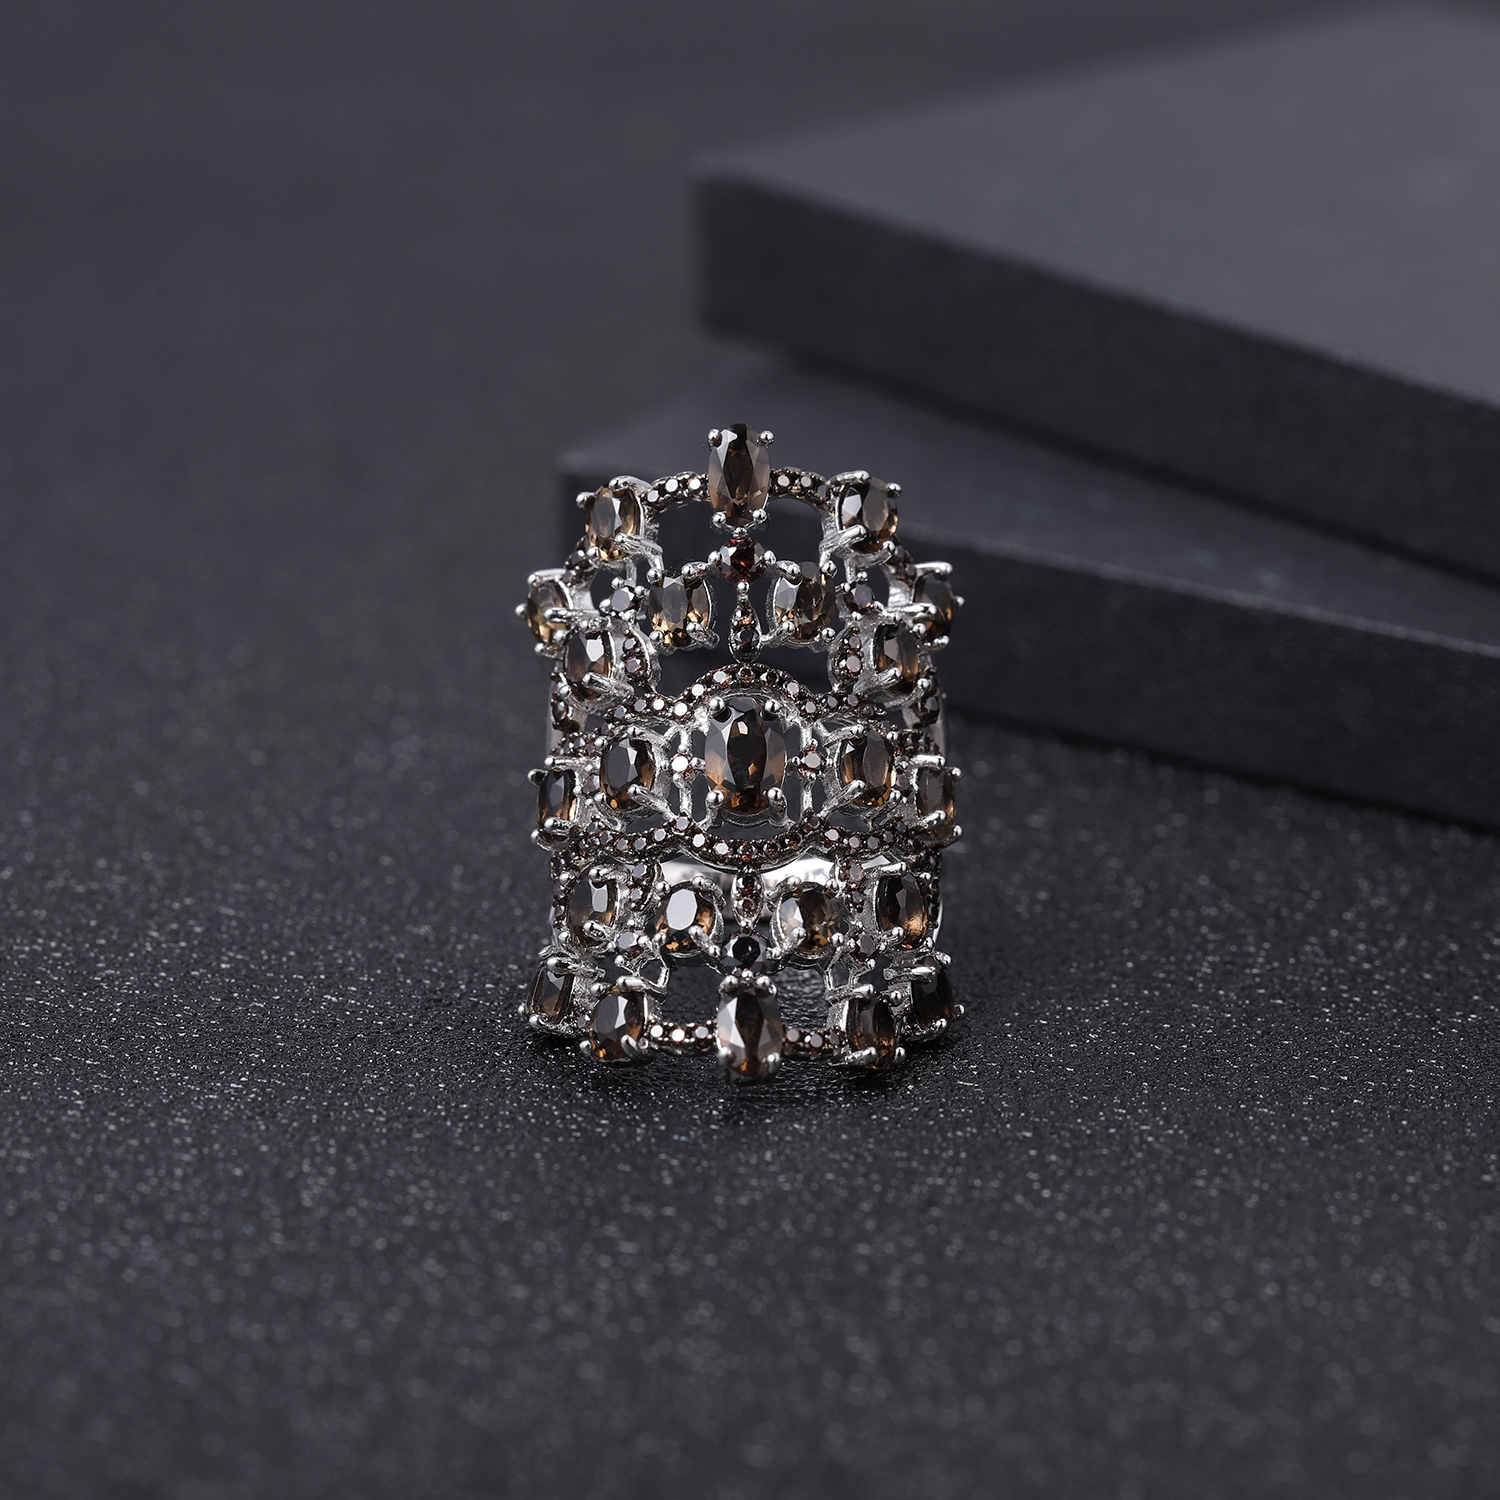 GEM'S BALLET Luxury 7.17Ct Natural Smoky Quartz Gemstone Rings For Women Real 925 Sterling Silver Finger Ring Fine Jewelry